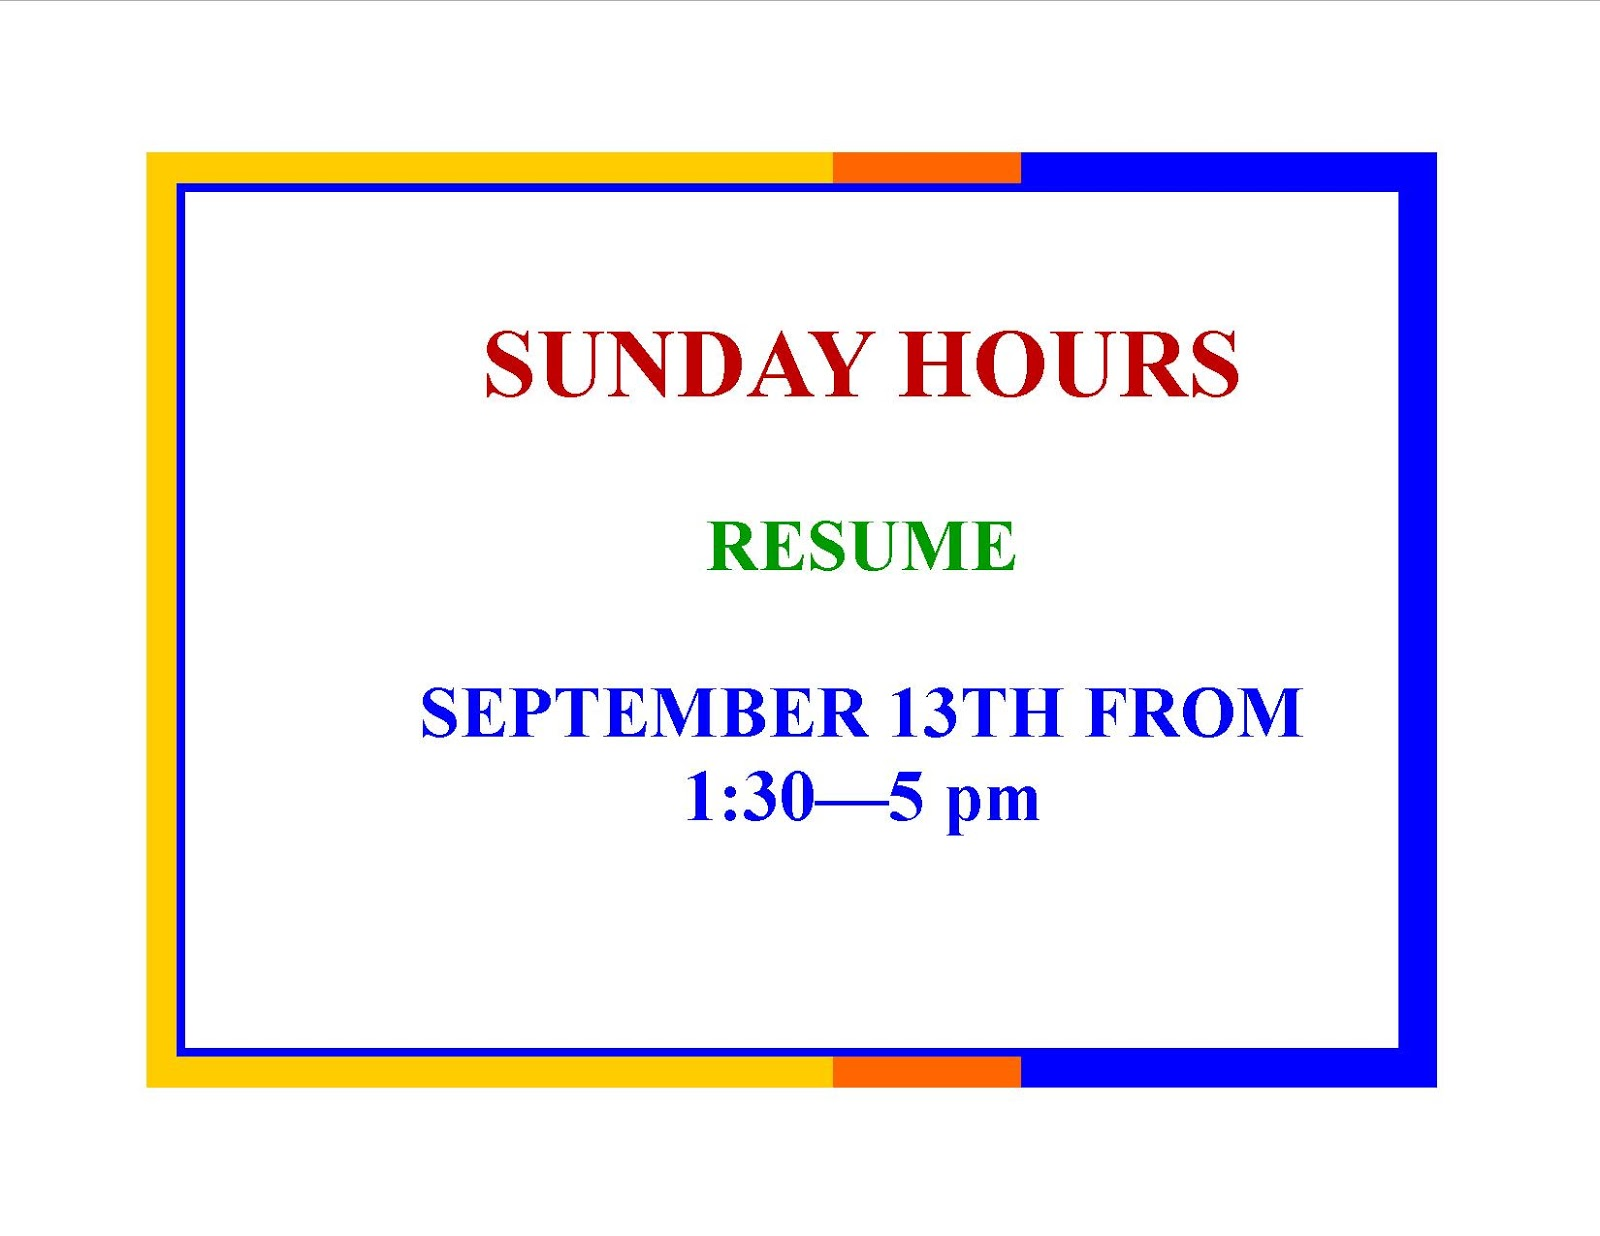 Sunday hours resume at the Franklin Public Library Sep 13